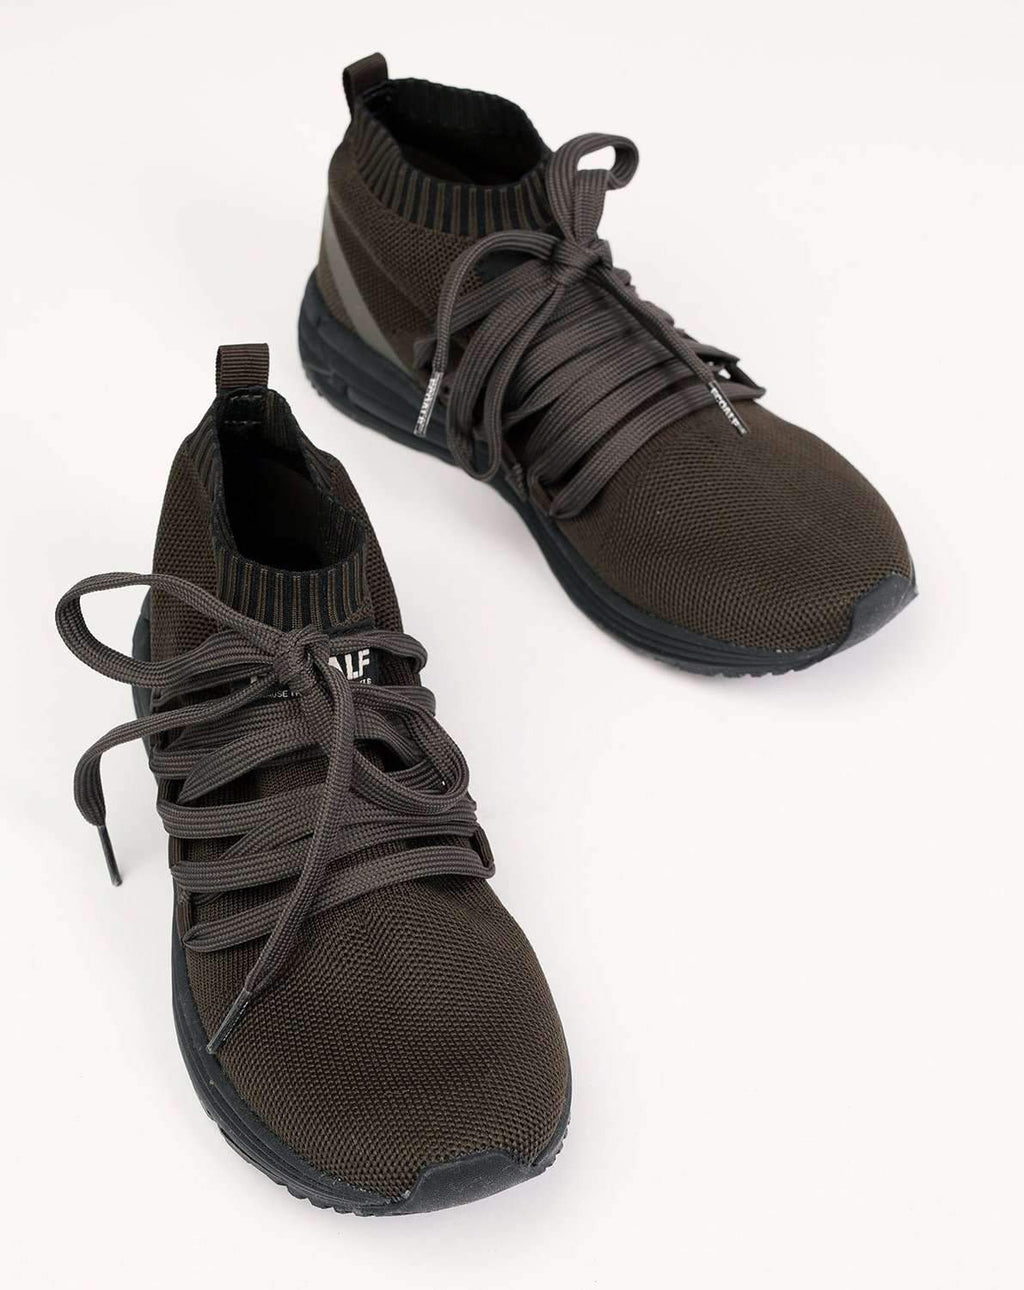 Boracay sneakers - Dark Khaki - noia.shop